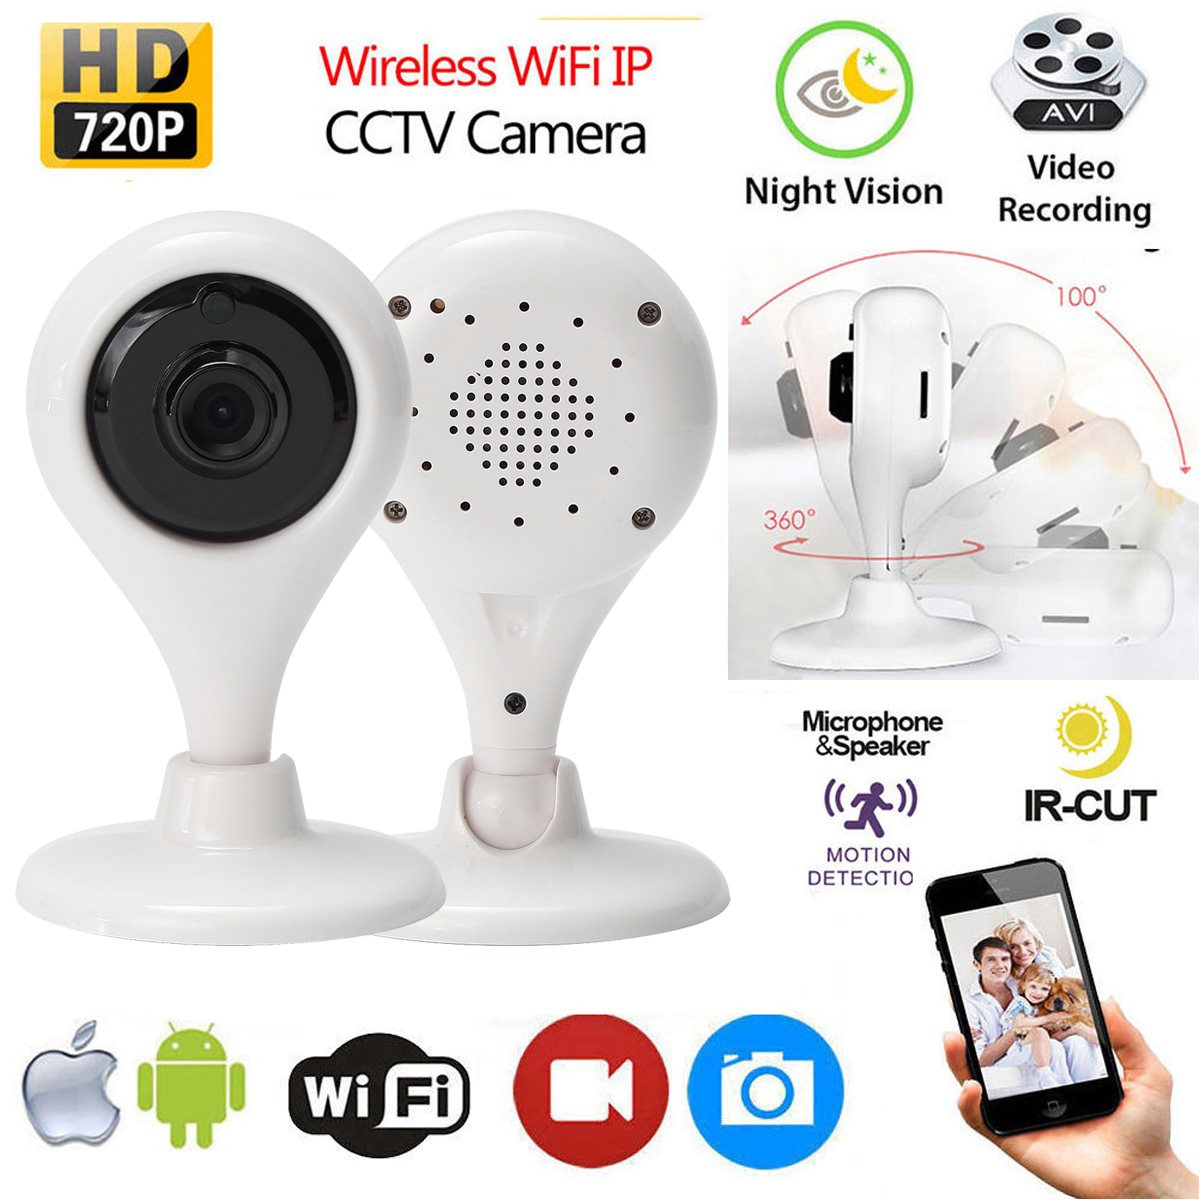 NEW HD 720P Smart Wireless Remote WIFI IP CCTV Camera Outdoor Security Network Night Vision Surveillance Camera Baby Montors